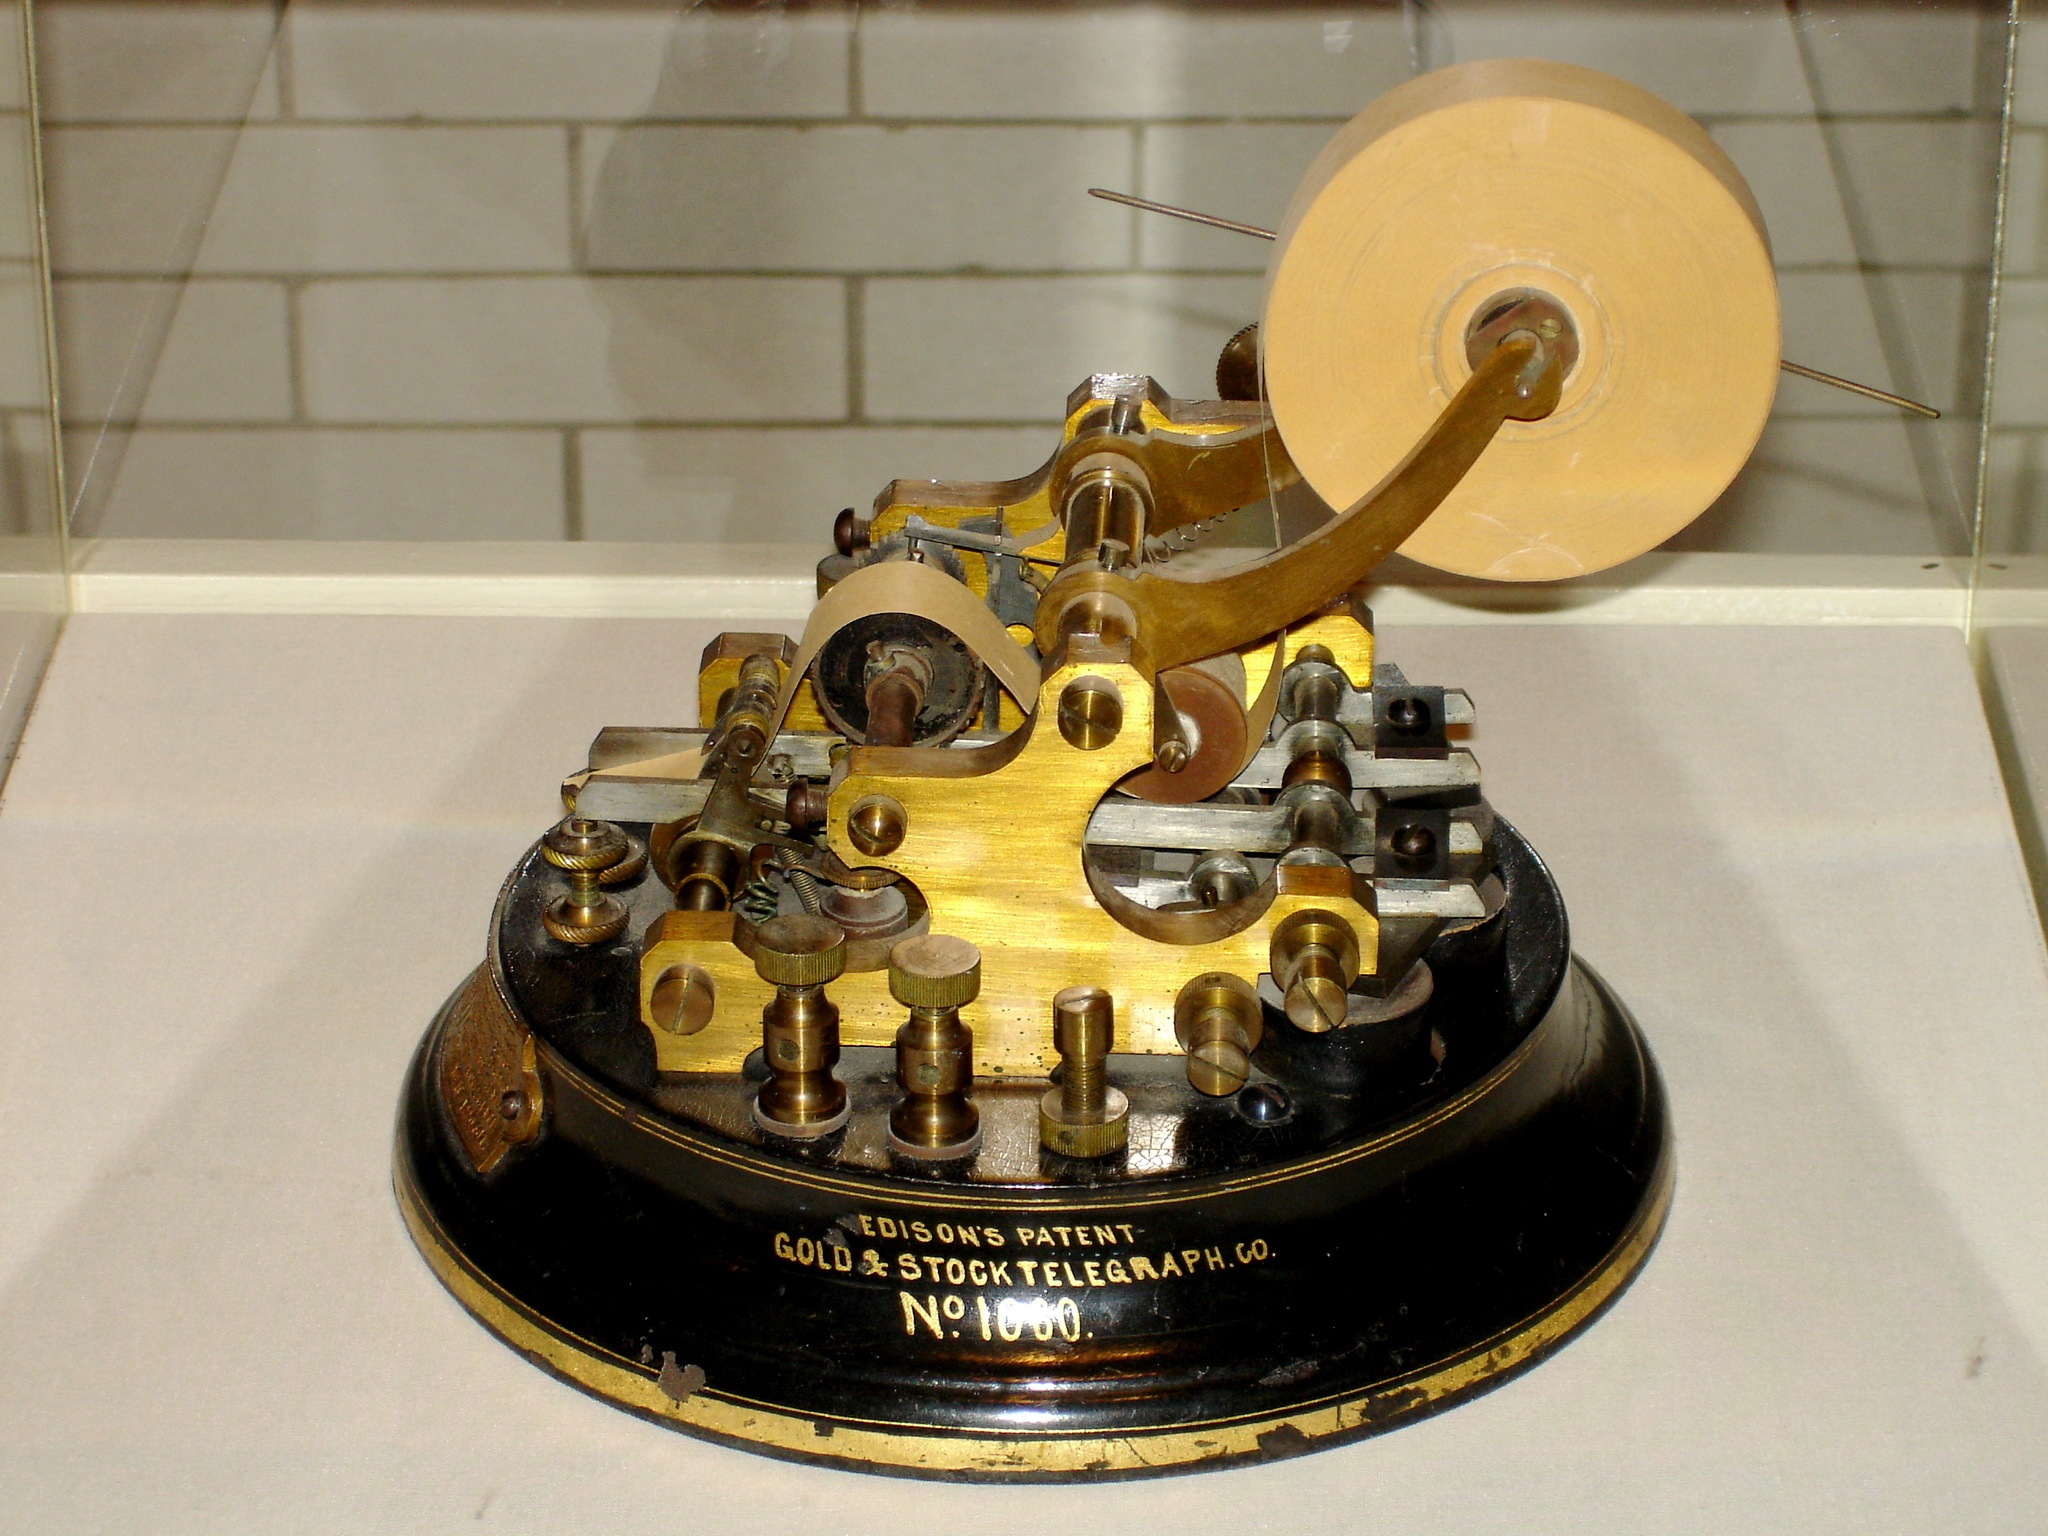 Photo Stock Images Stock telegraph ticker machine